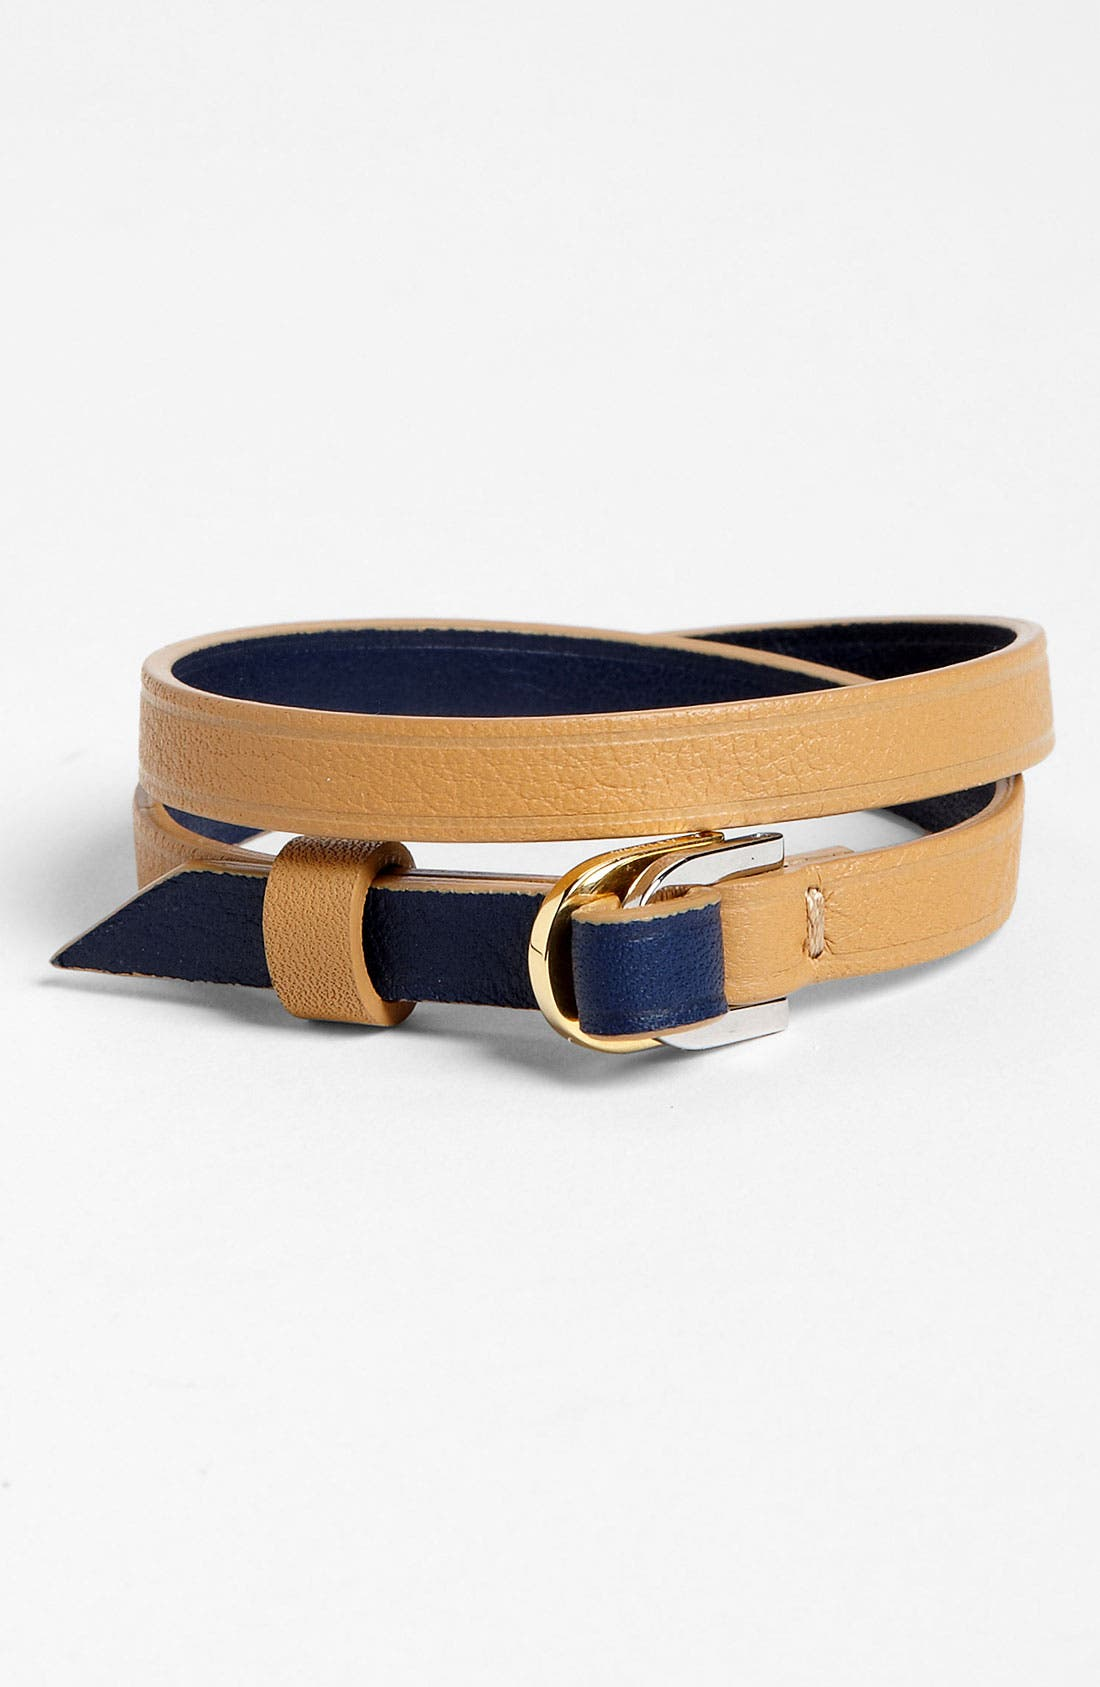 Alternate Image 1 Selected - WANT Les Essentiels de la Vie 'Arlanda' Reversible Leather Bracelet